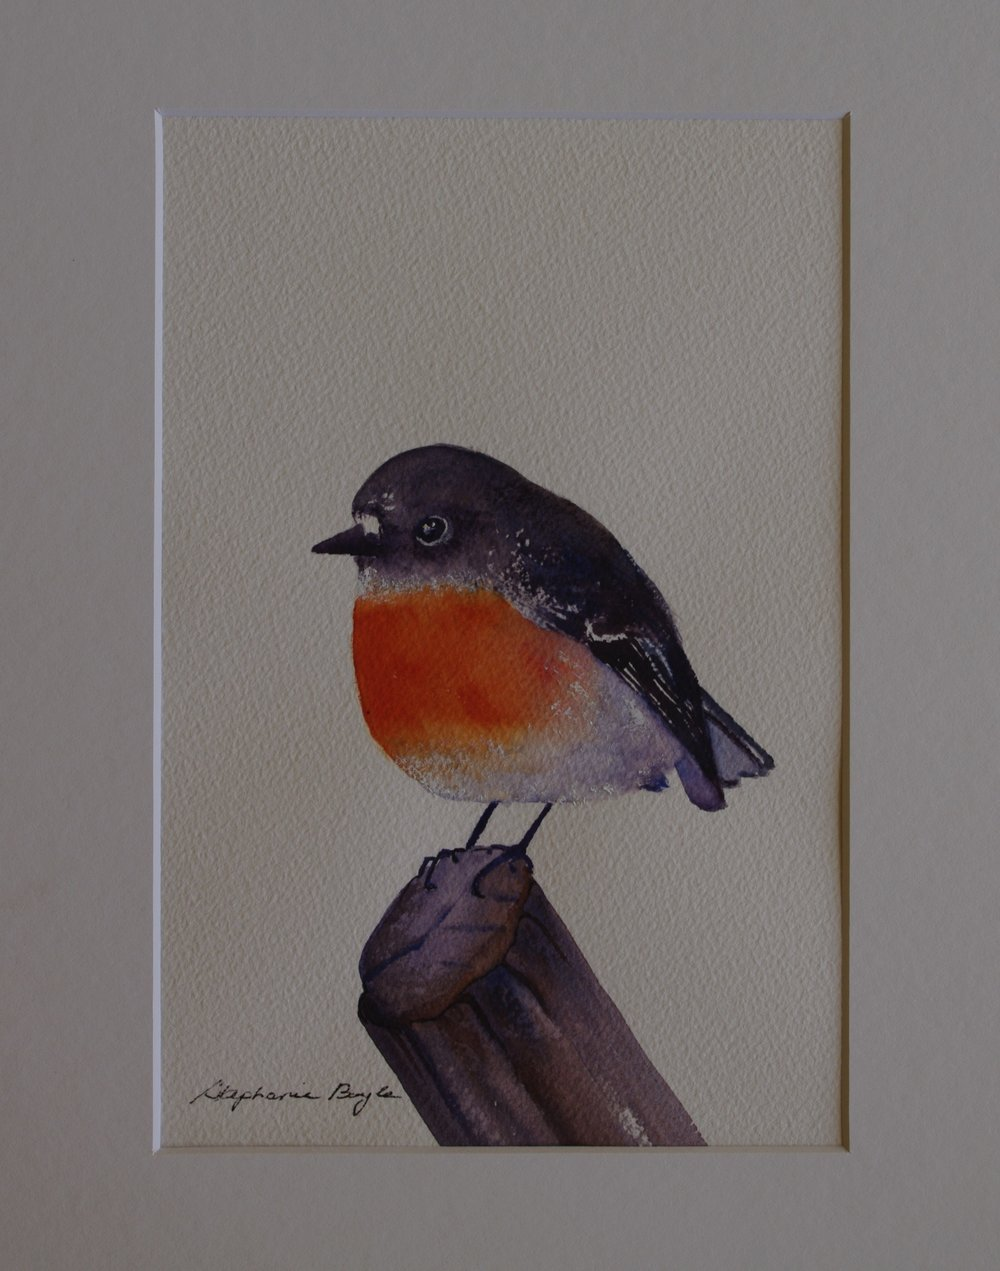 Red Robin    17cm x 22cm    Original Watercolour     Unframed      $100